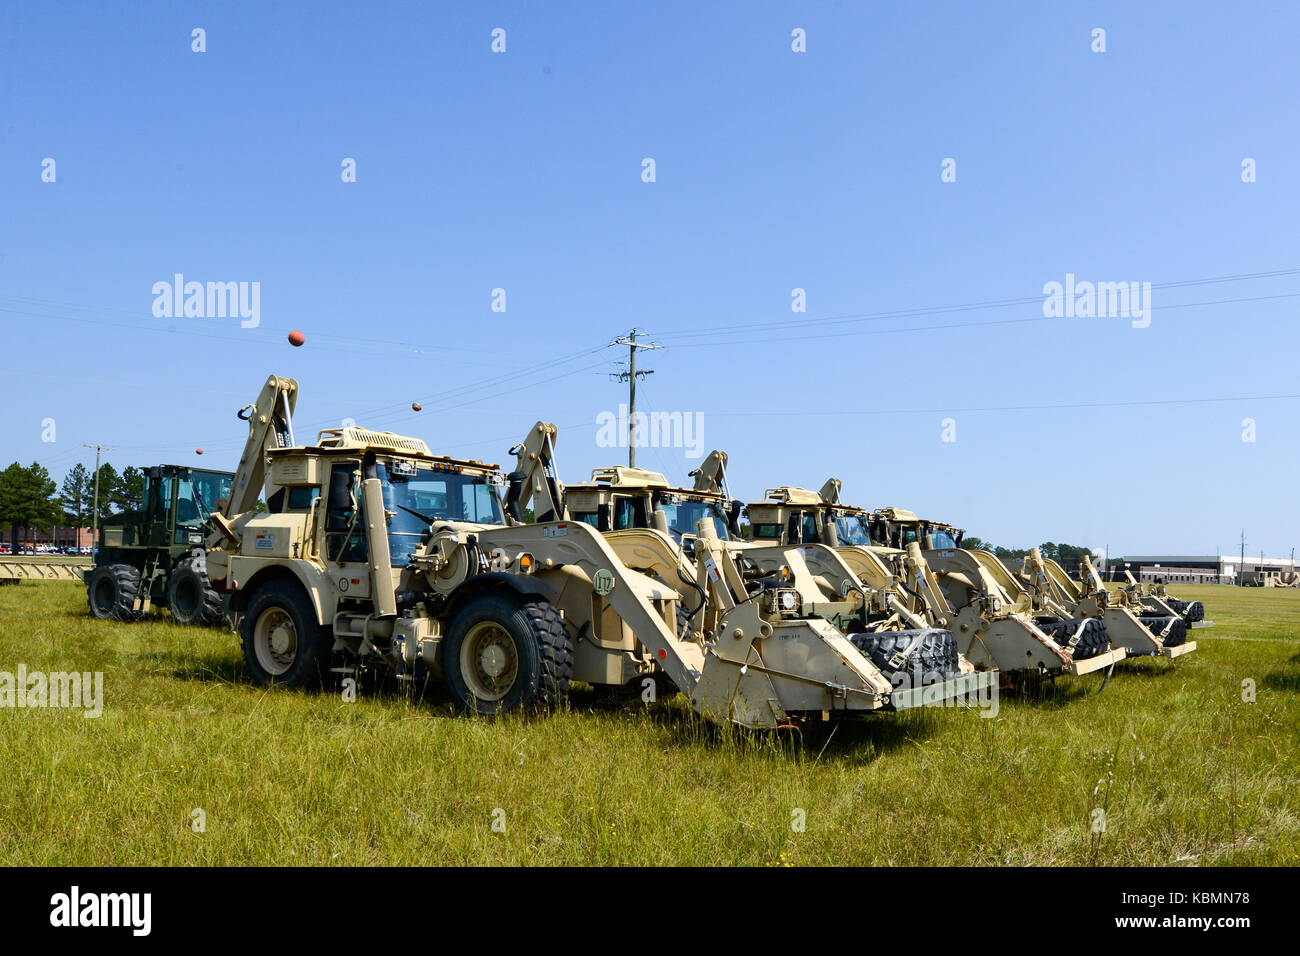 U.S. Soldiers assigned to the 178th Engineer Battalion, South Carolina Army National Guard, stage heavy equipment Stock Photo